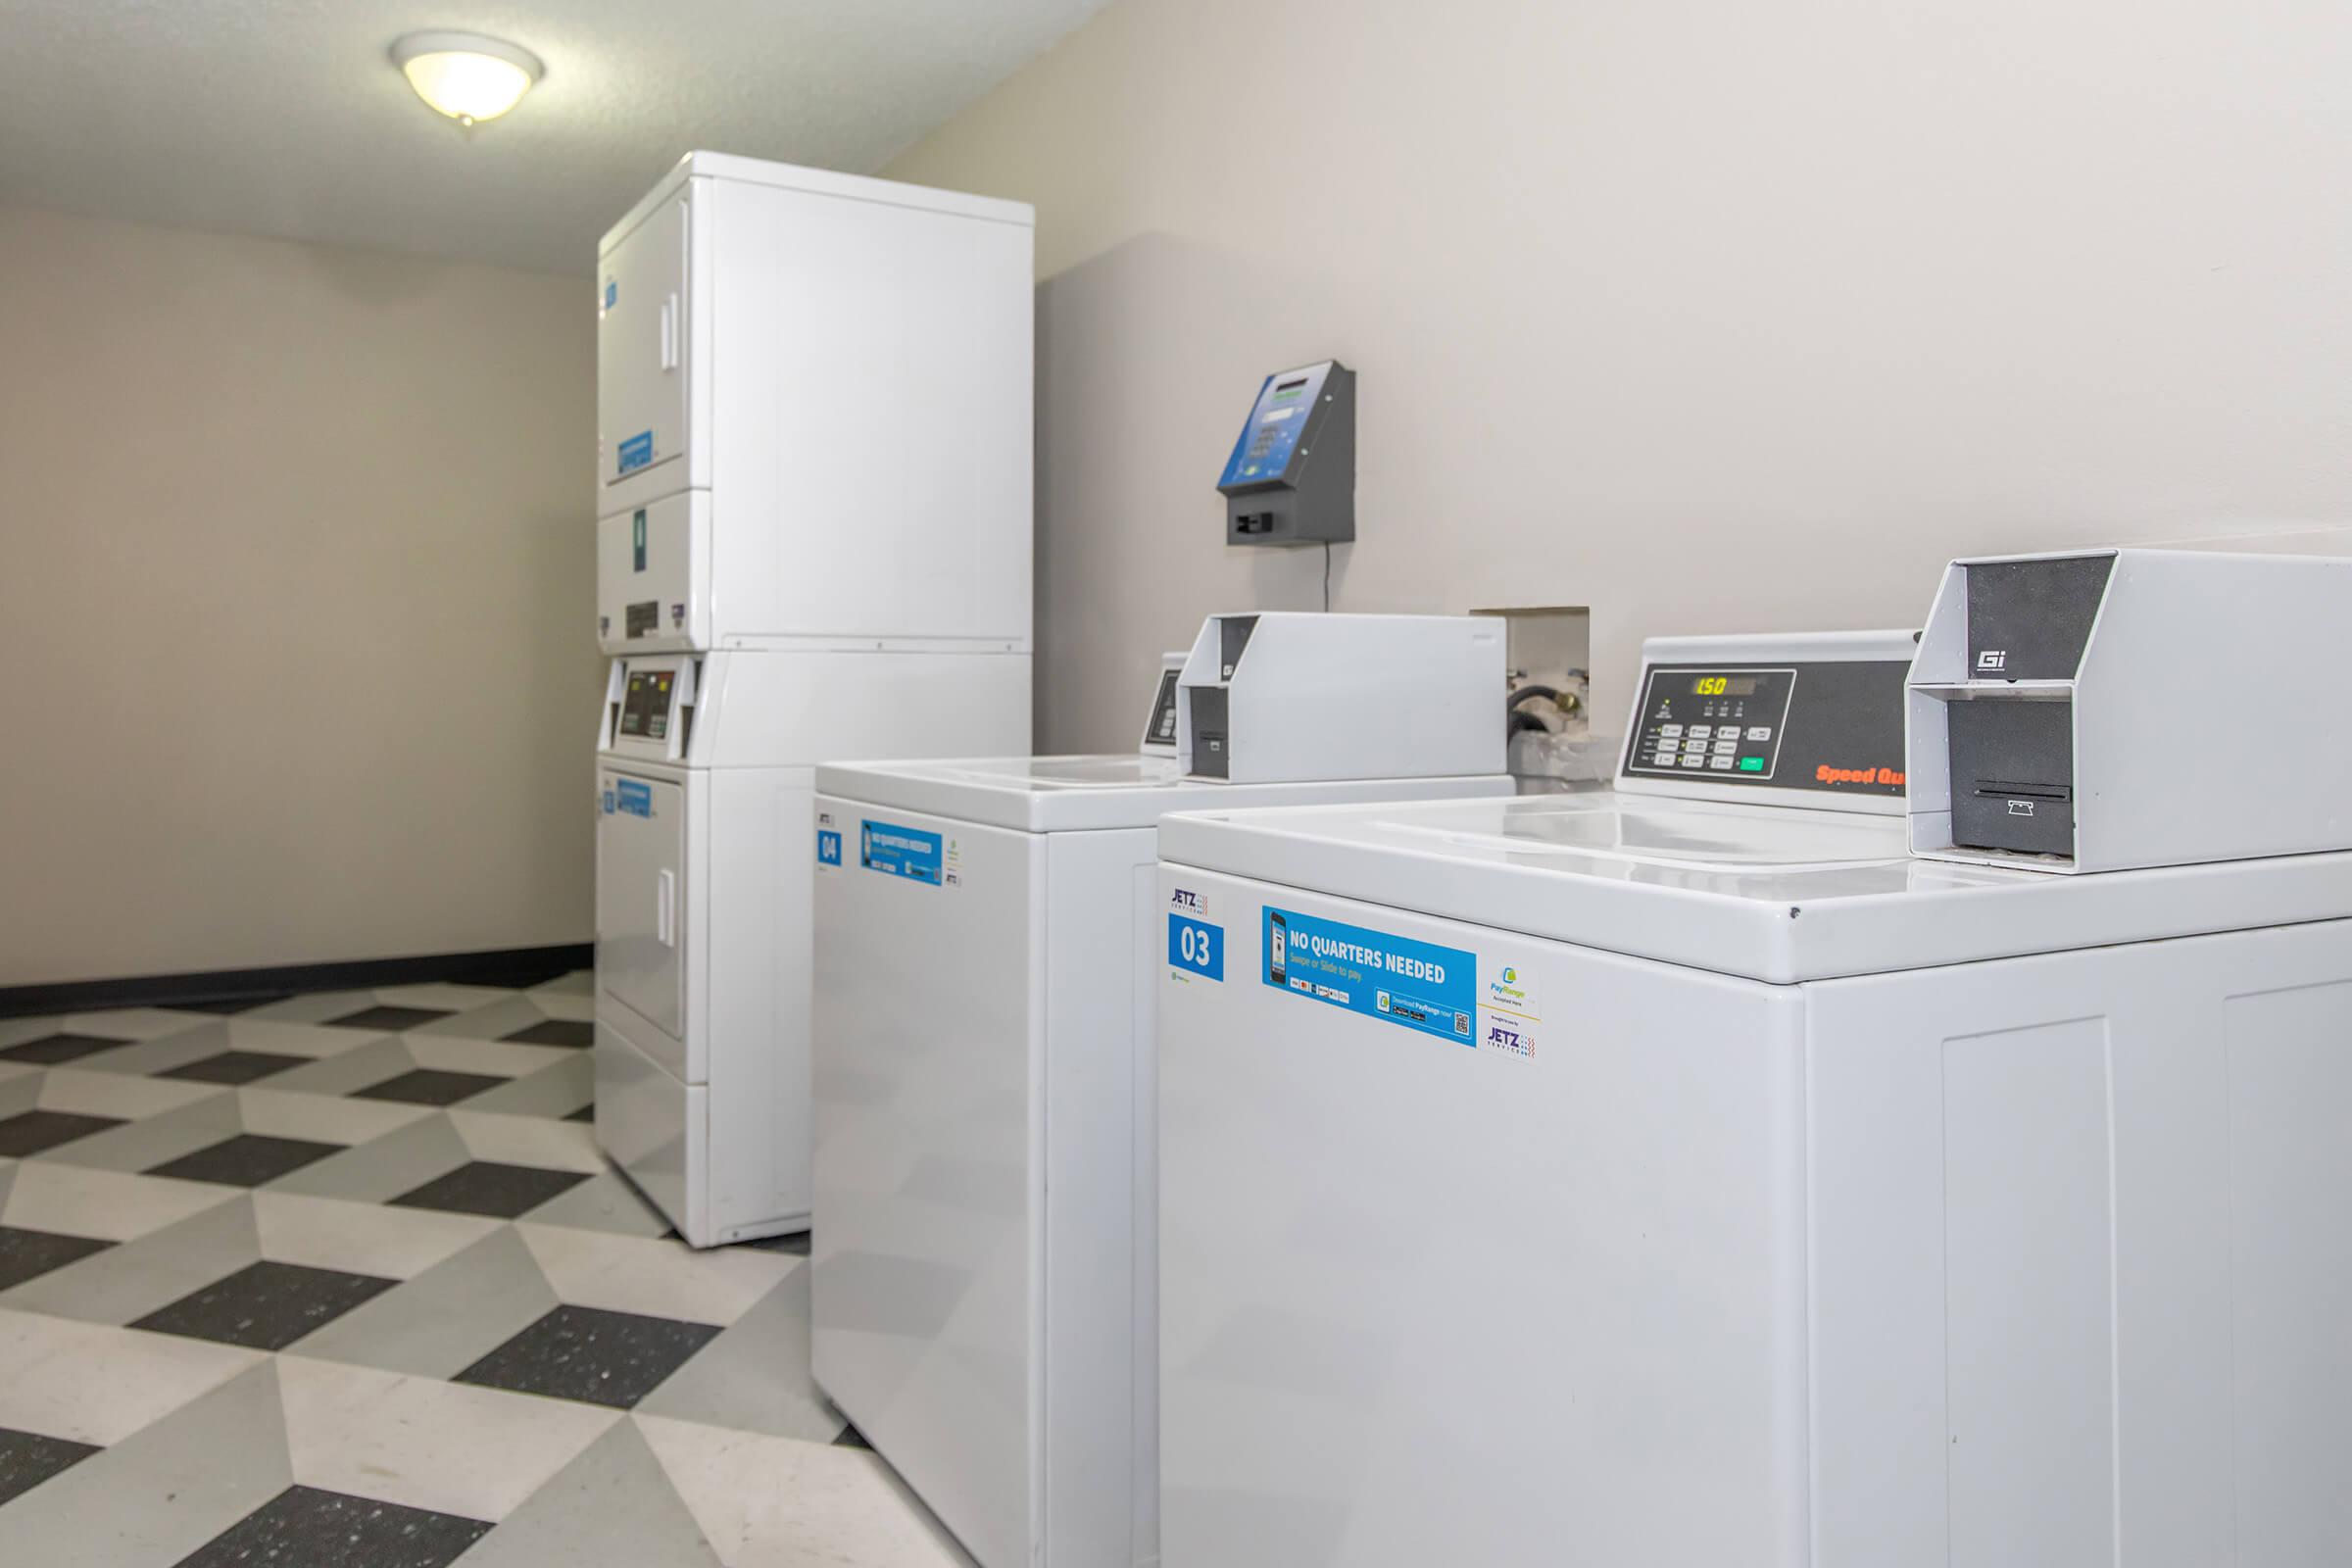 LOADS OF FUN AT OUR ON-SITE LAUNDRY FACILITY